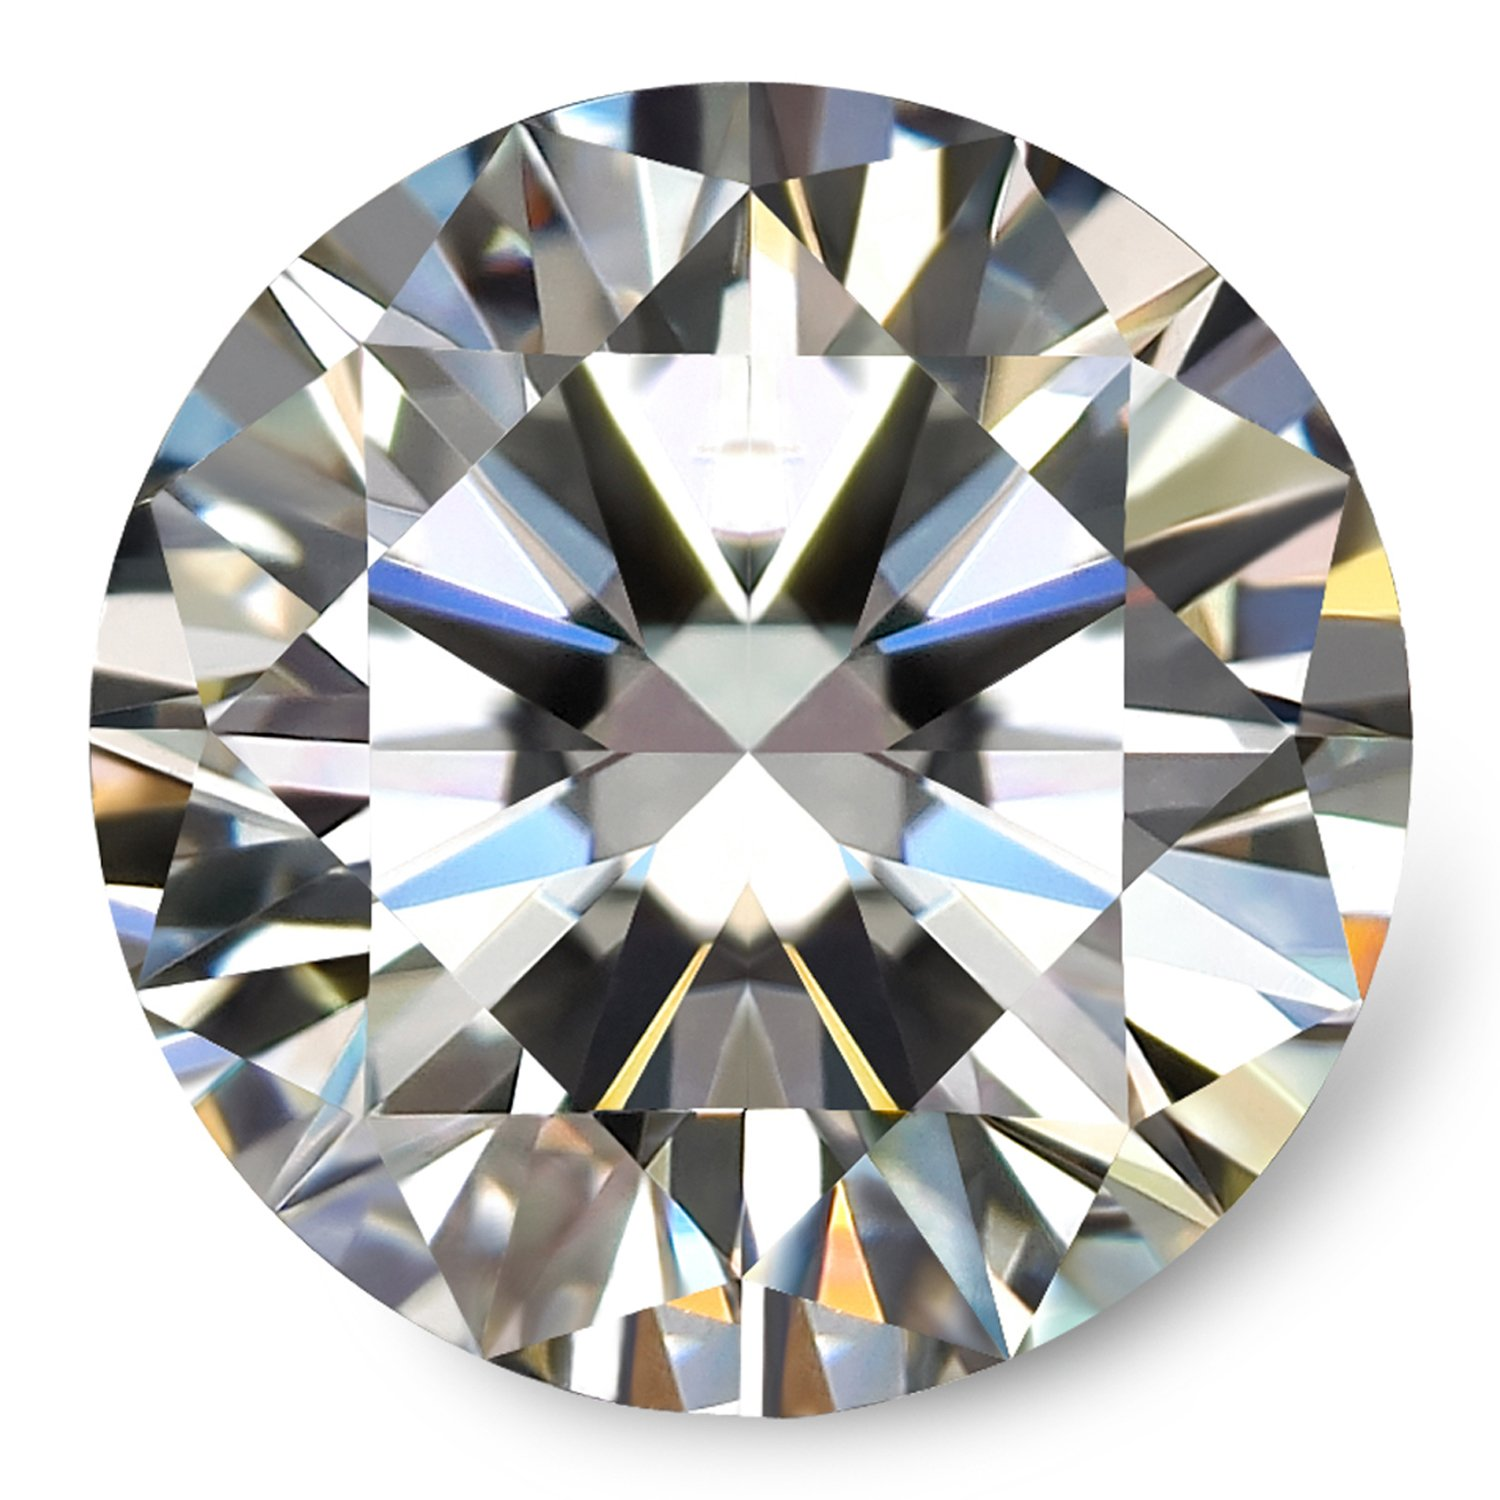 stone moissanite diamond hollywood cut loose round neo gem stones rounda designs tilt gemstone j product